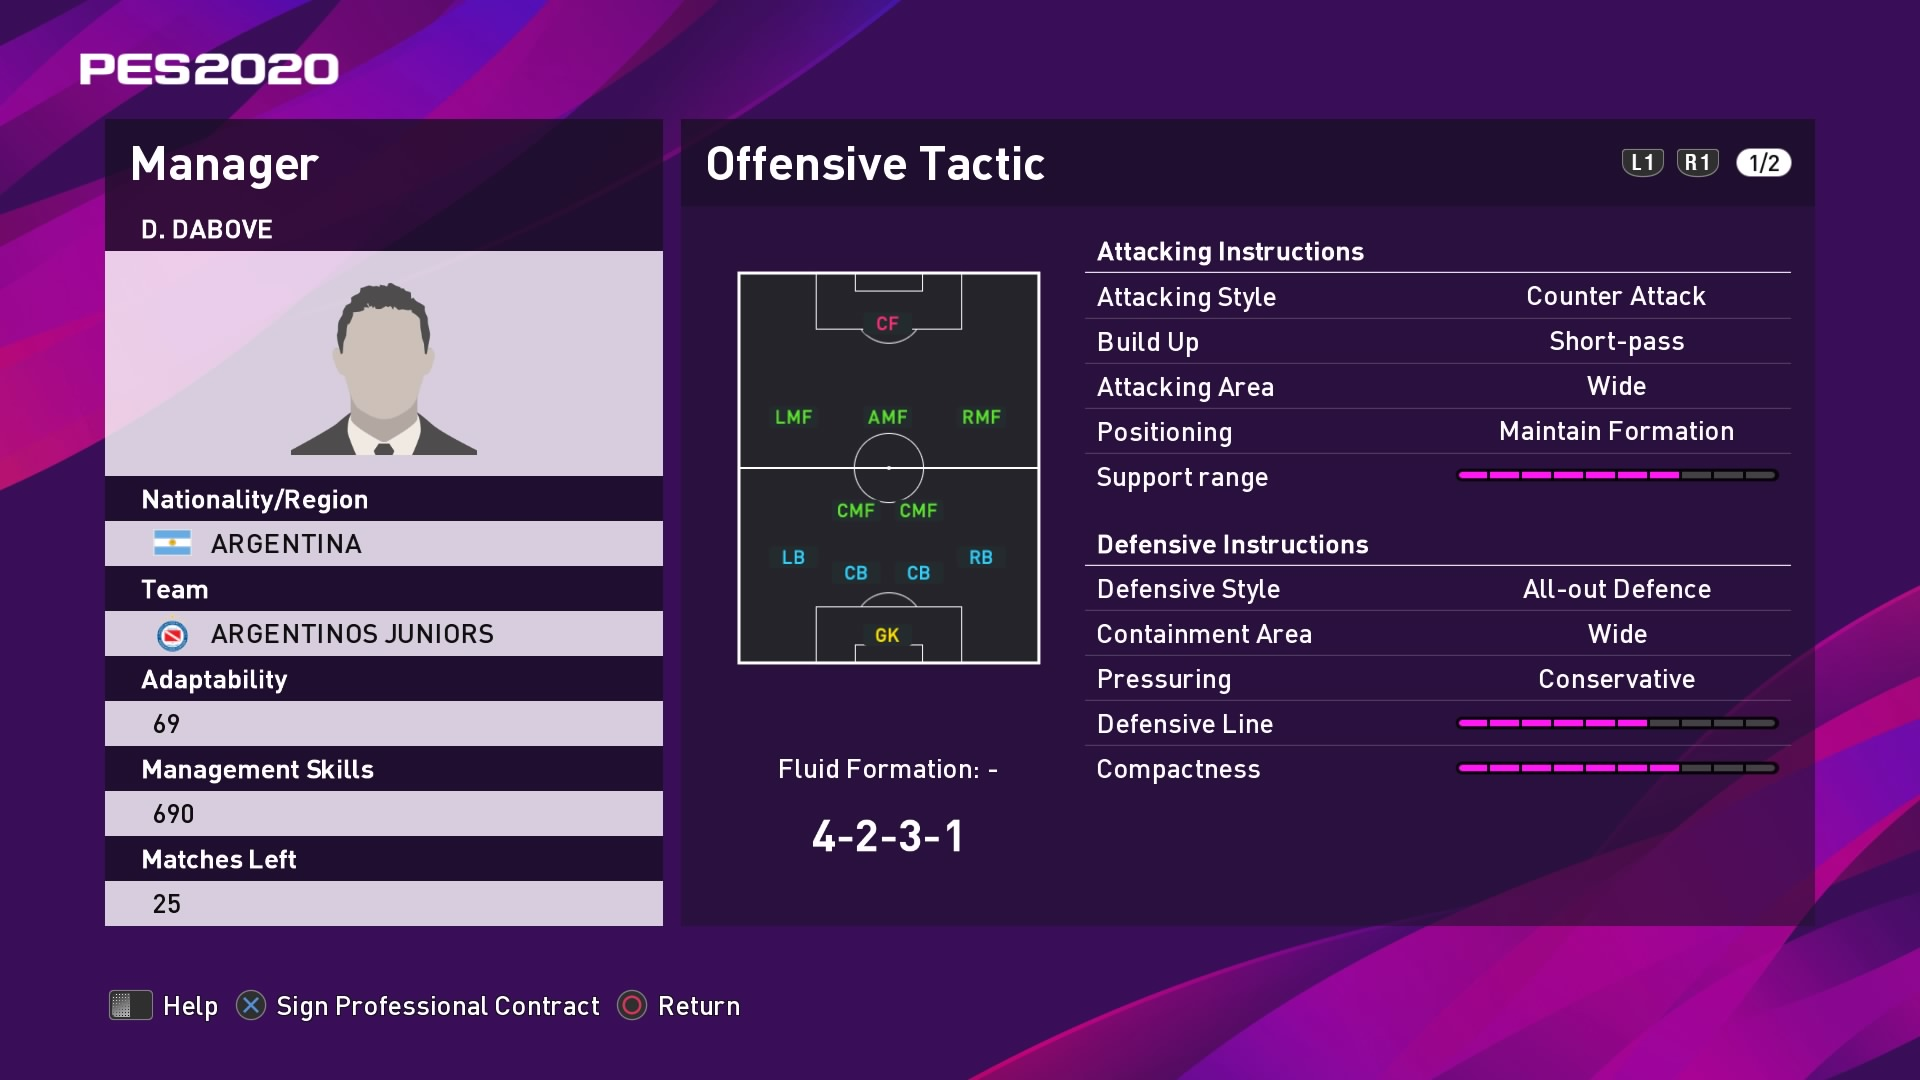 D. Dabove (Diego Dabove) Offensive Tactic in PES 2020 myClub